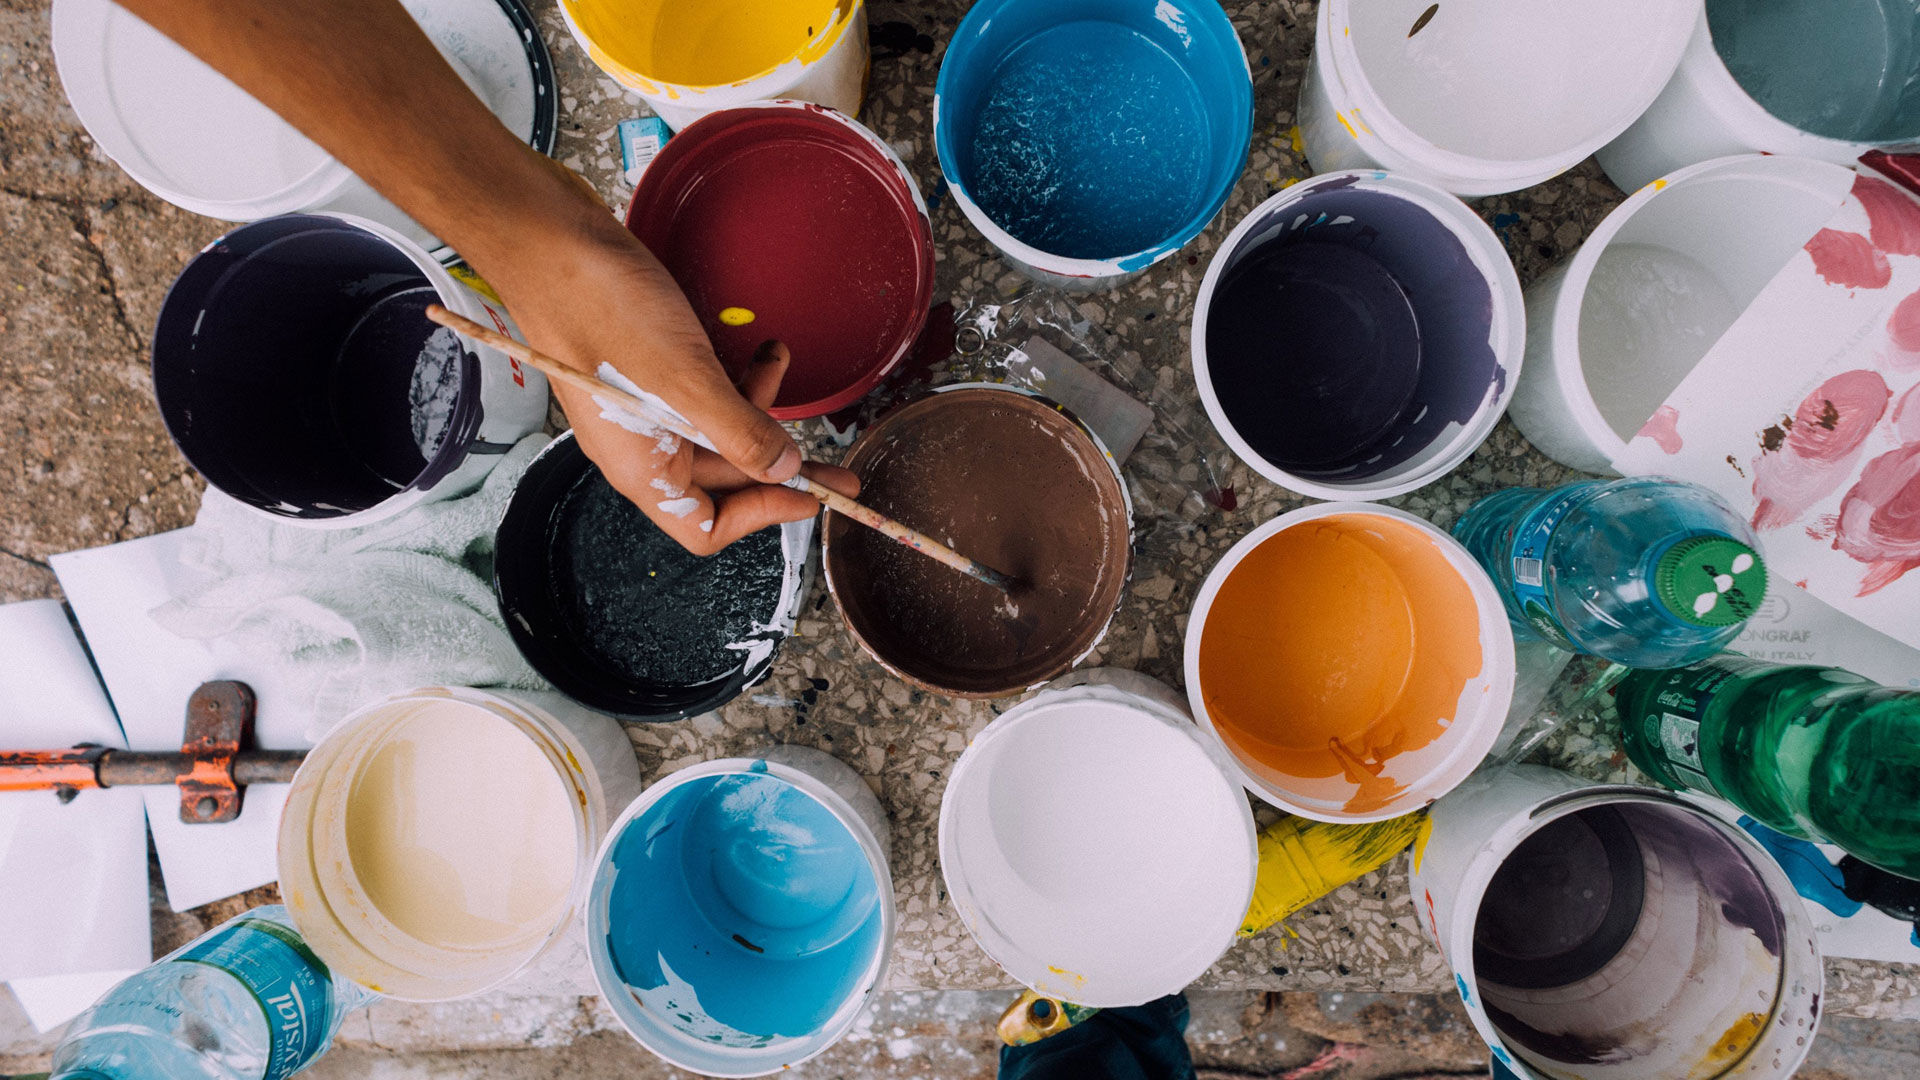 Paint Pottery at the Clay Café